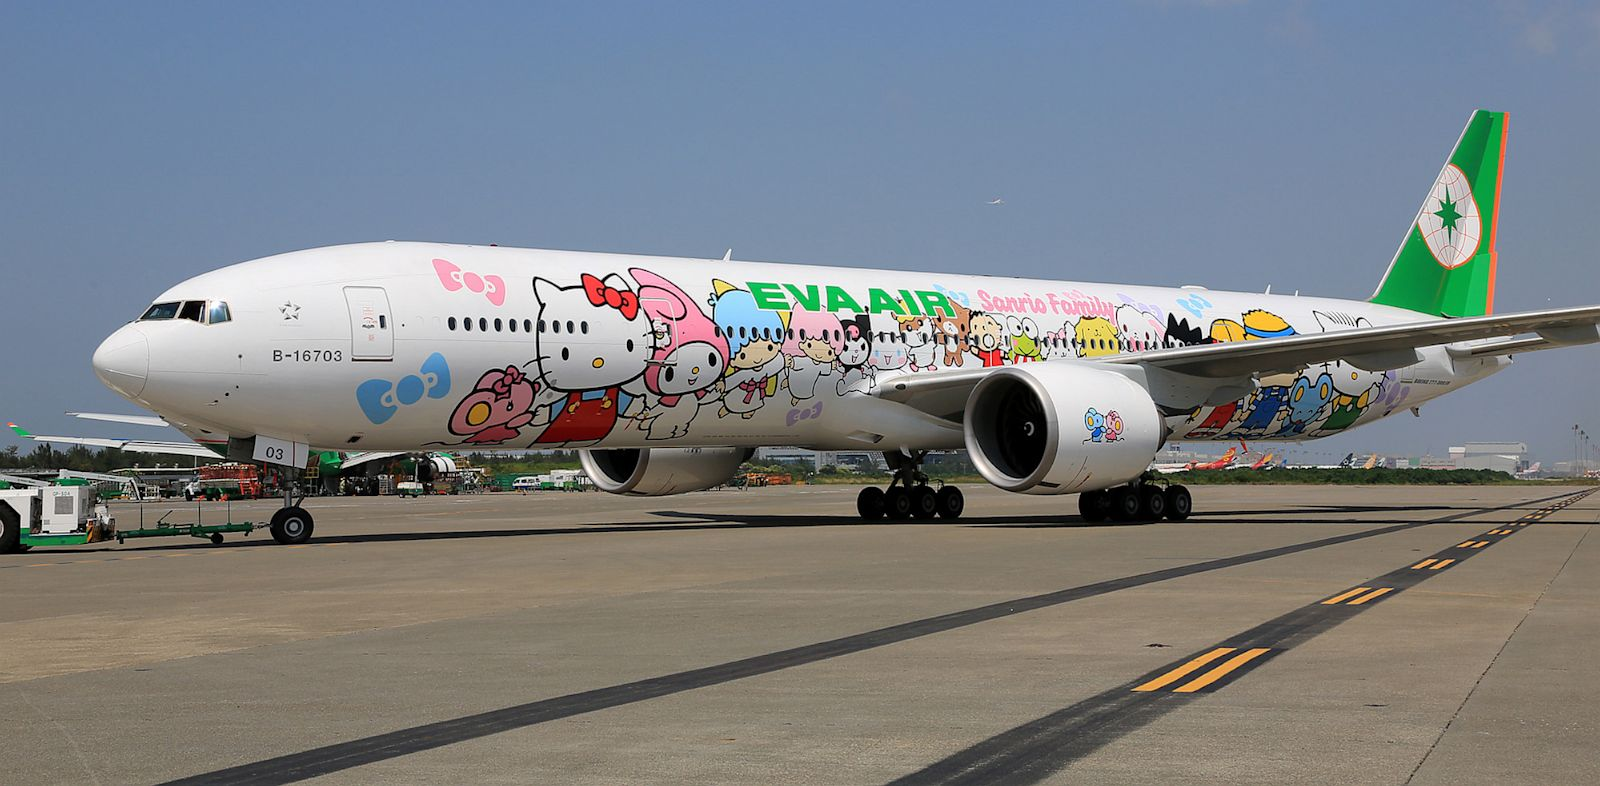 PHOTO: The Hello Kitty EVA Jet